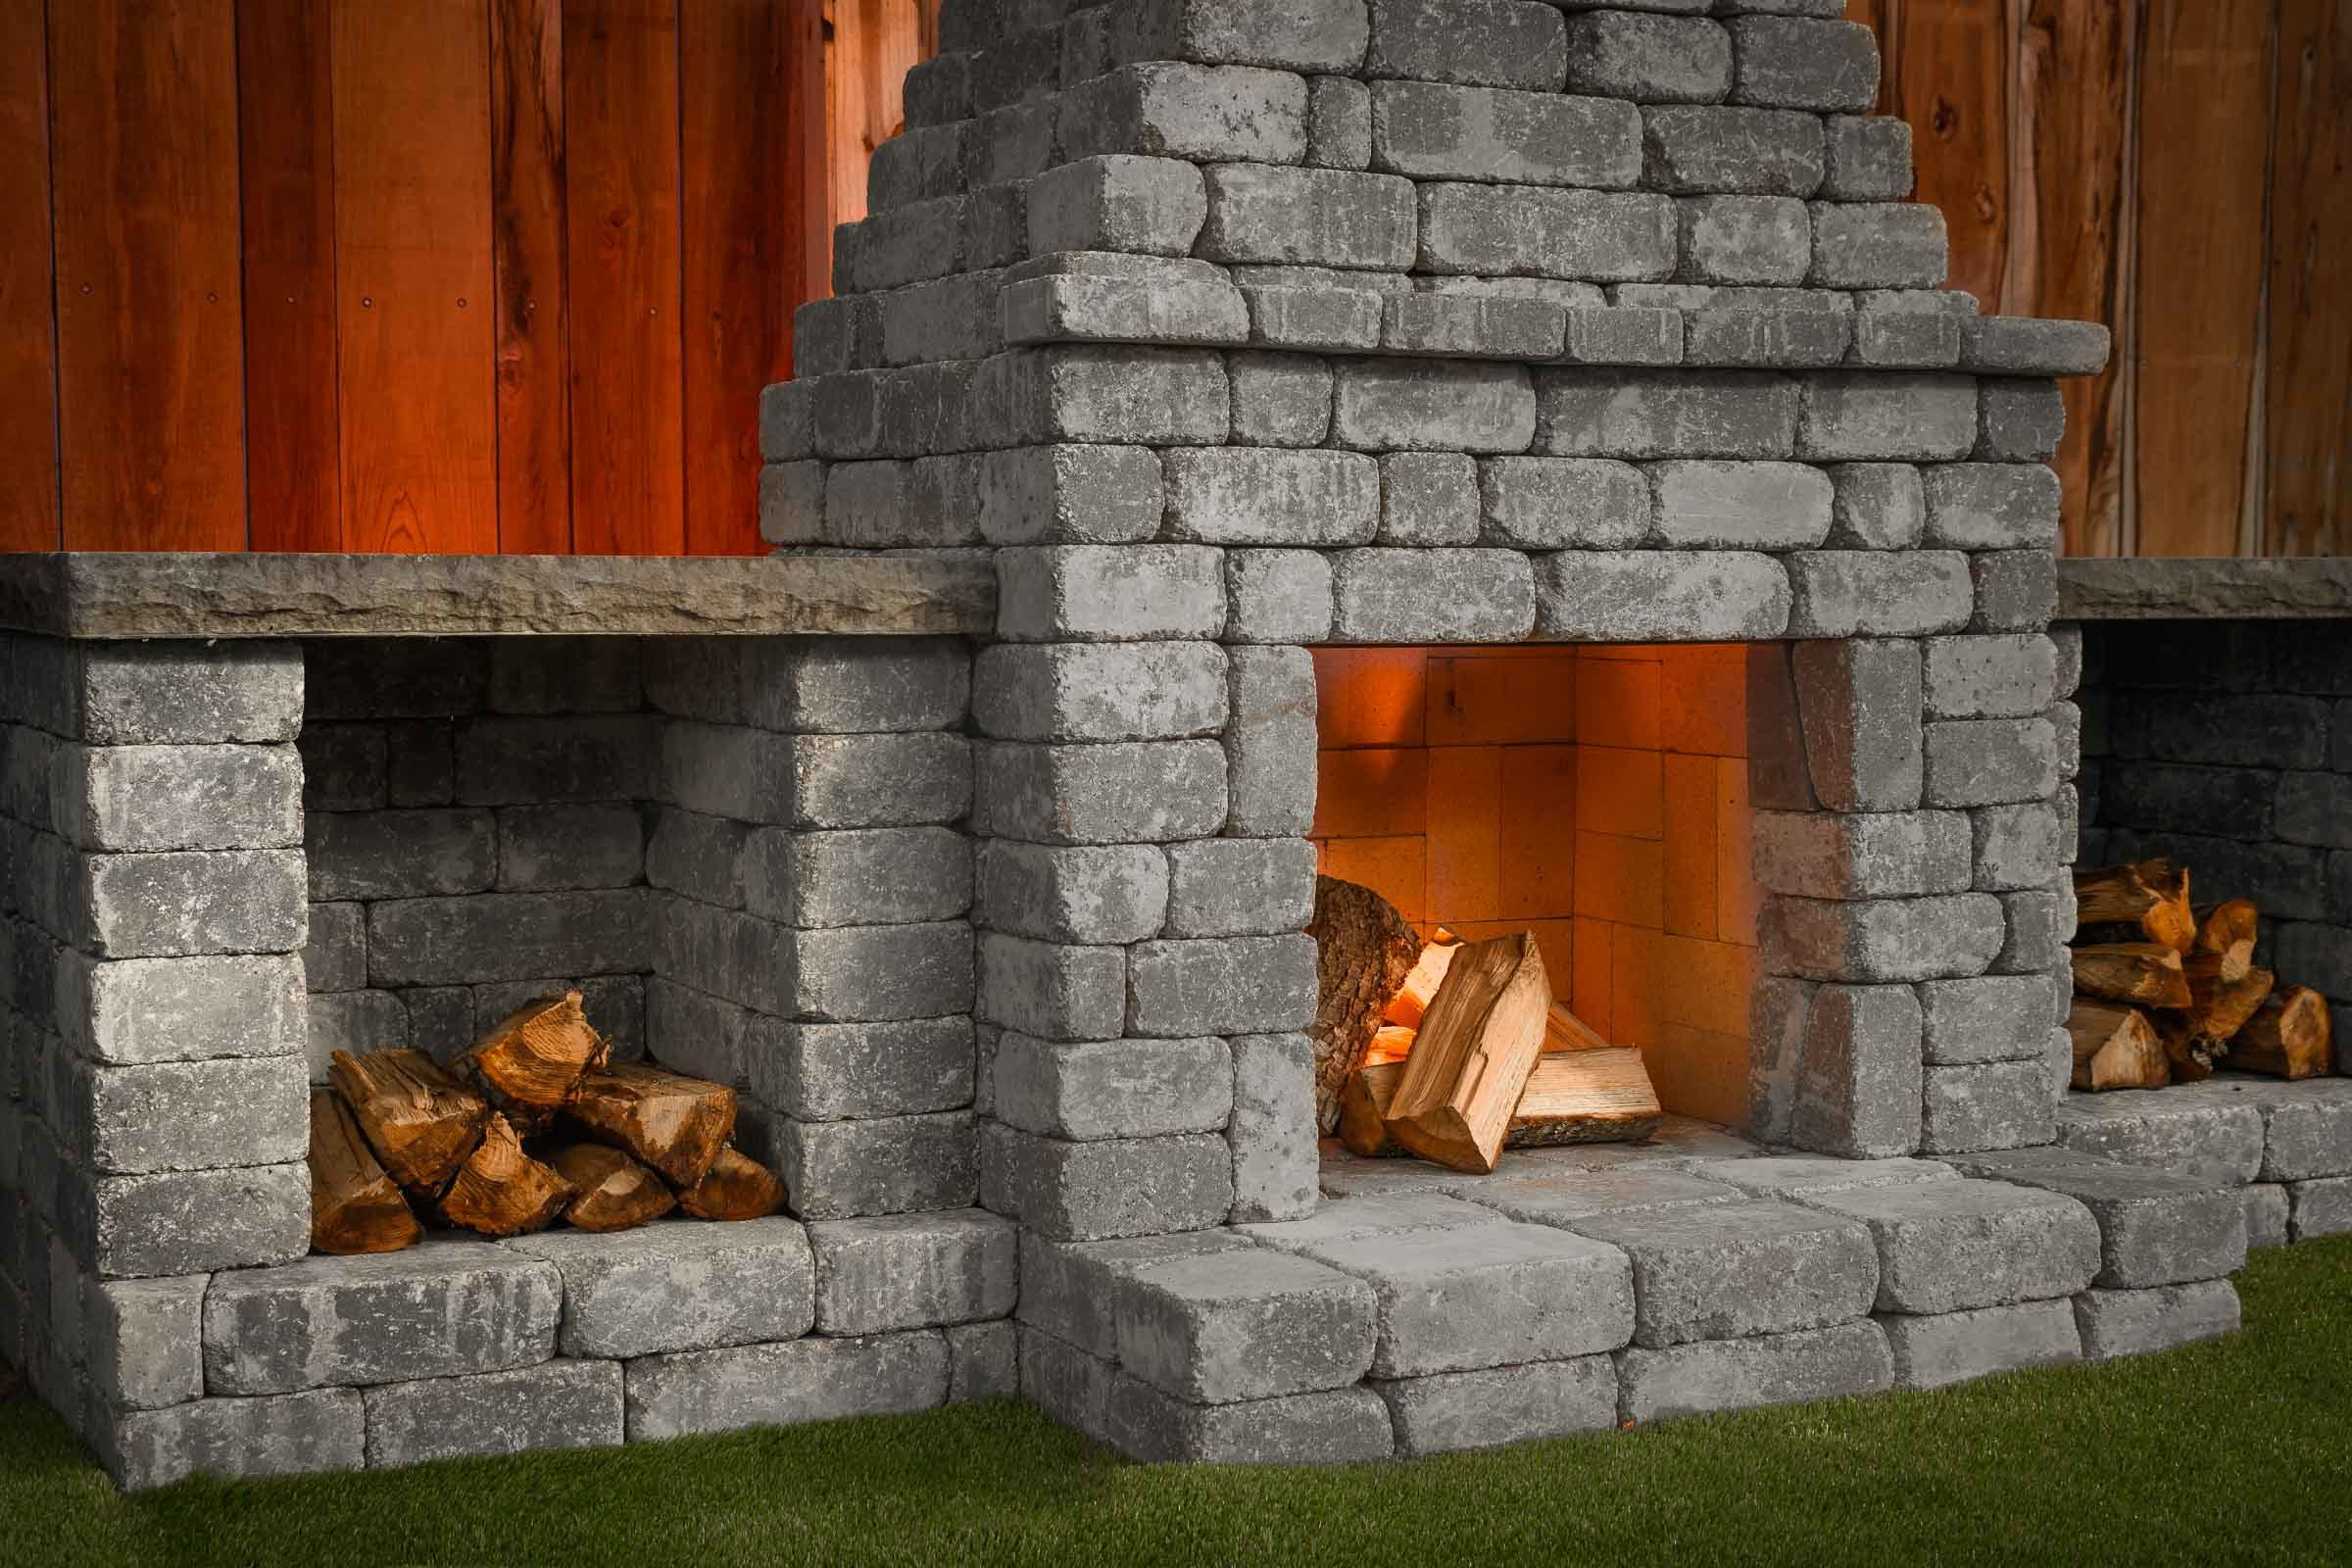 Fremont Fireplace Kit with optional wood storage boxes in Charcoal Blend